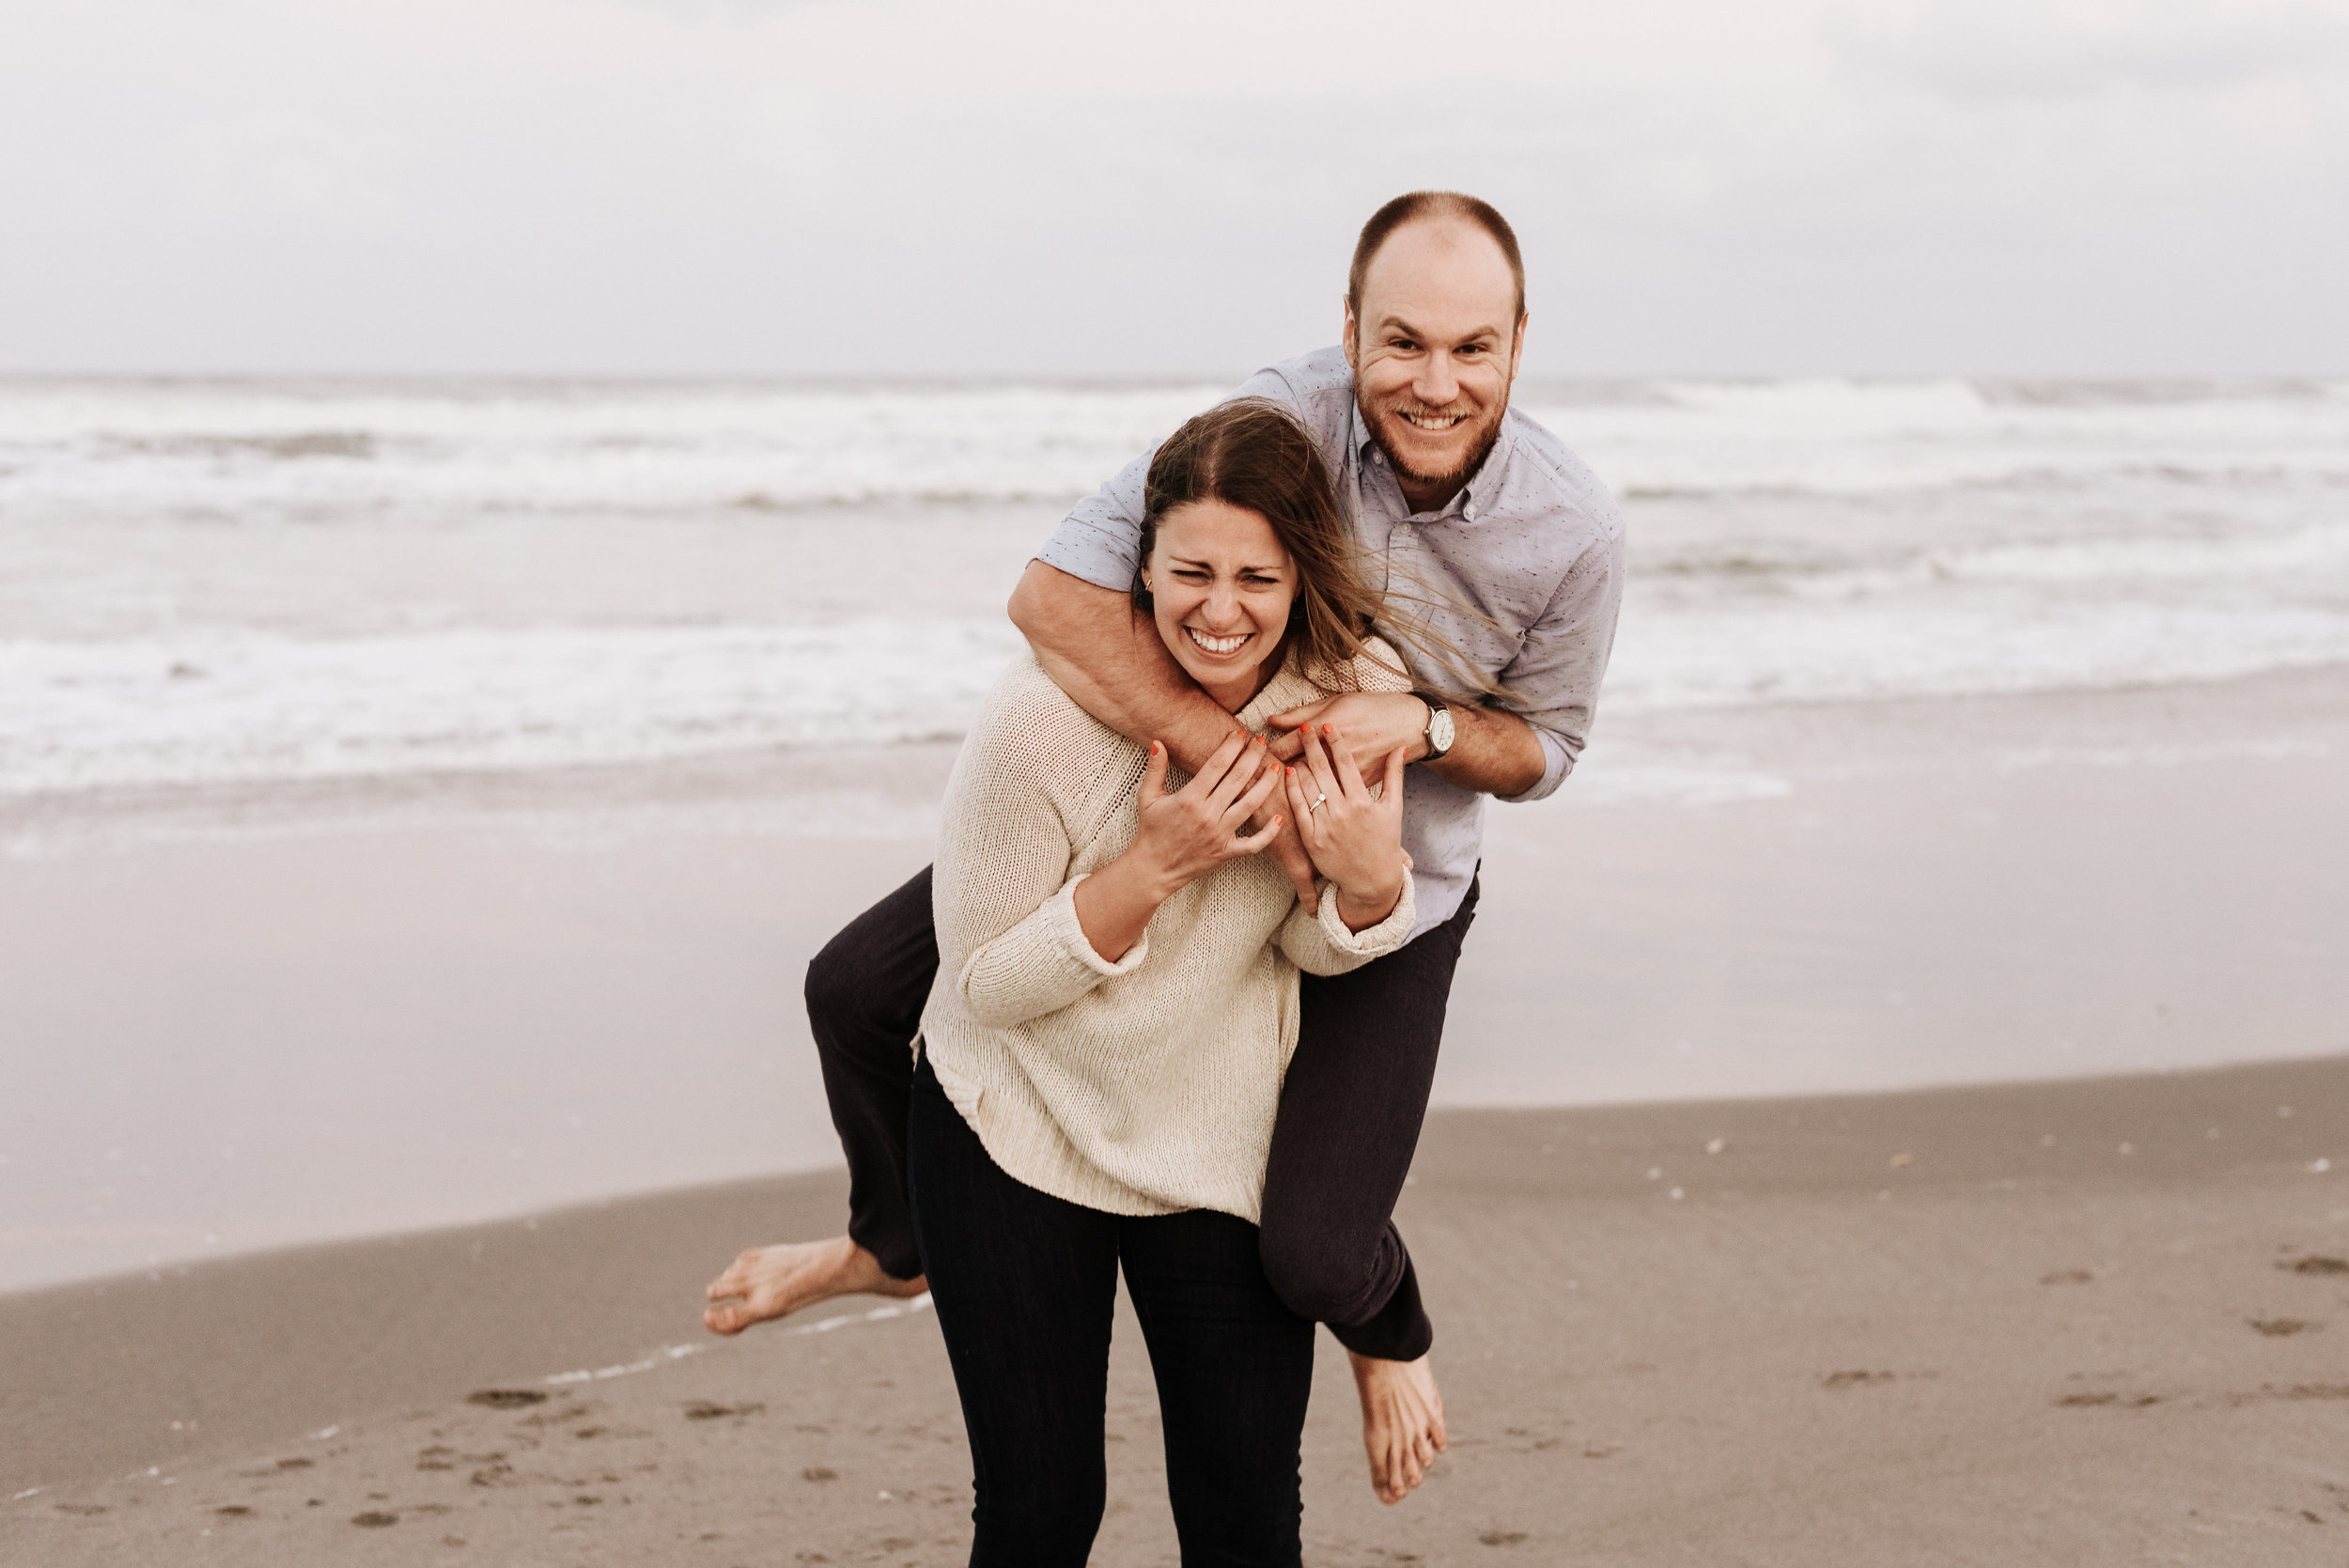 Courtney_Luke_Wedding_Engagement_Session_Cocoa_Beach_Florida_Photography_by_V_5020.jpg